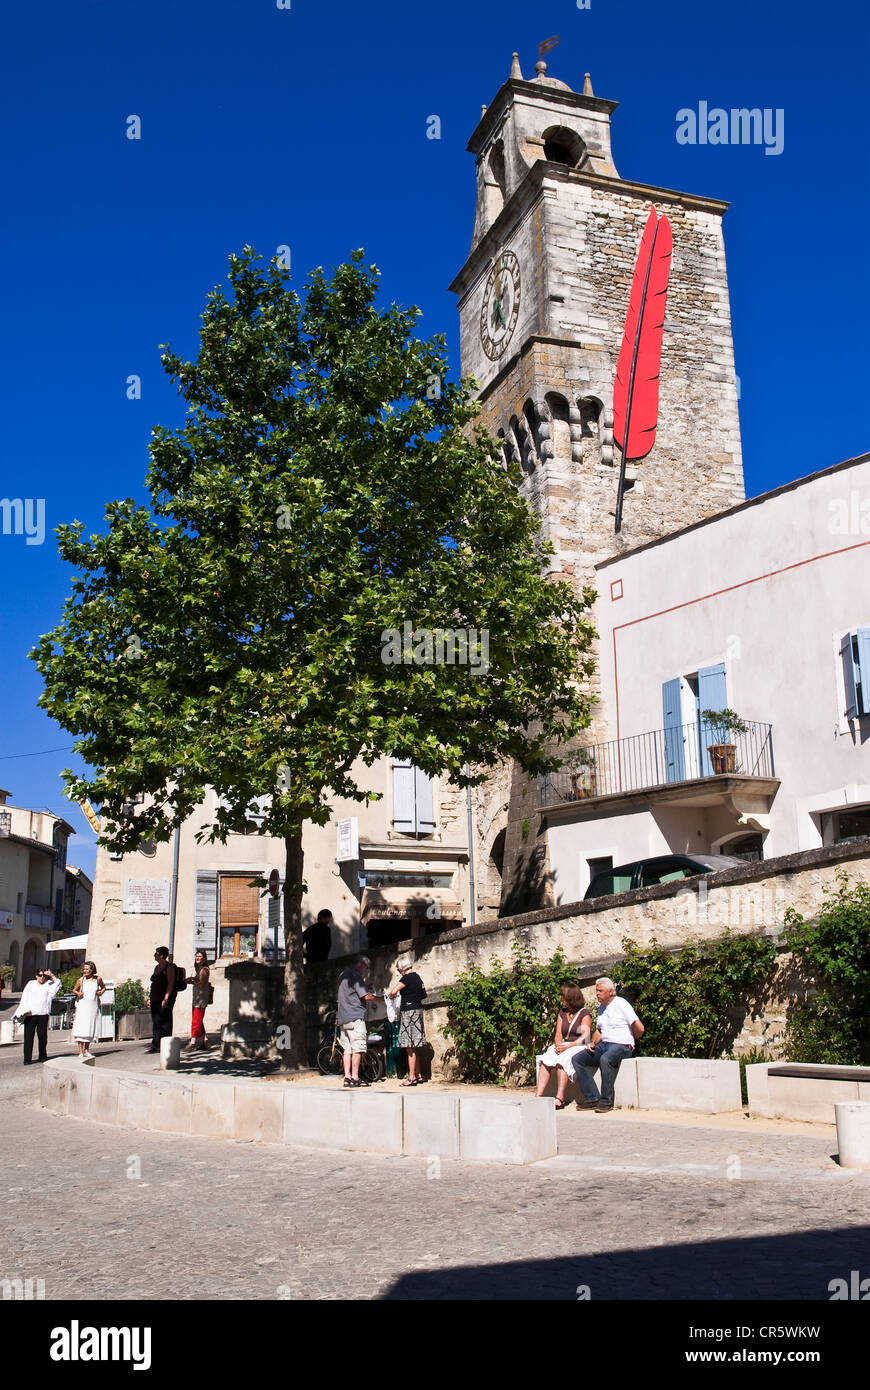 France, Drome, Drome provencale, Grignan, the Porte du Tricot Tower heightened in 1600 to allow the installation - Stock Image